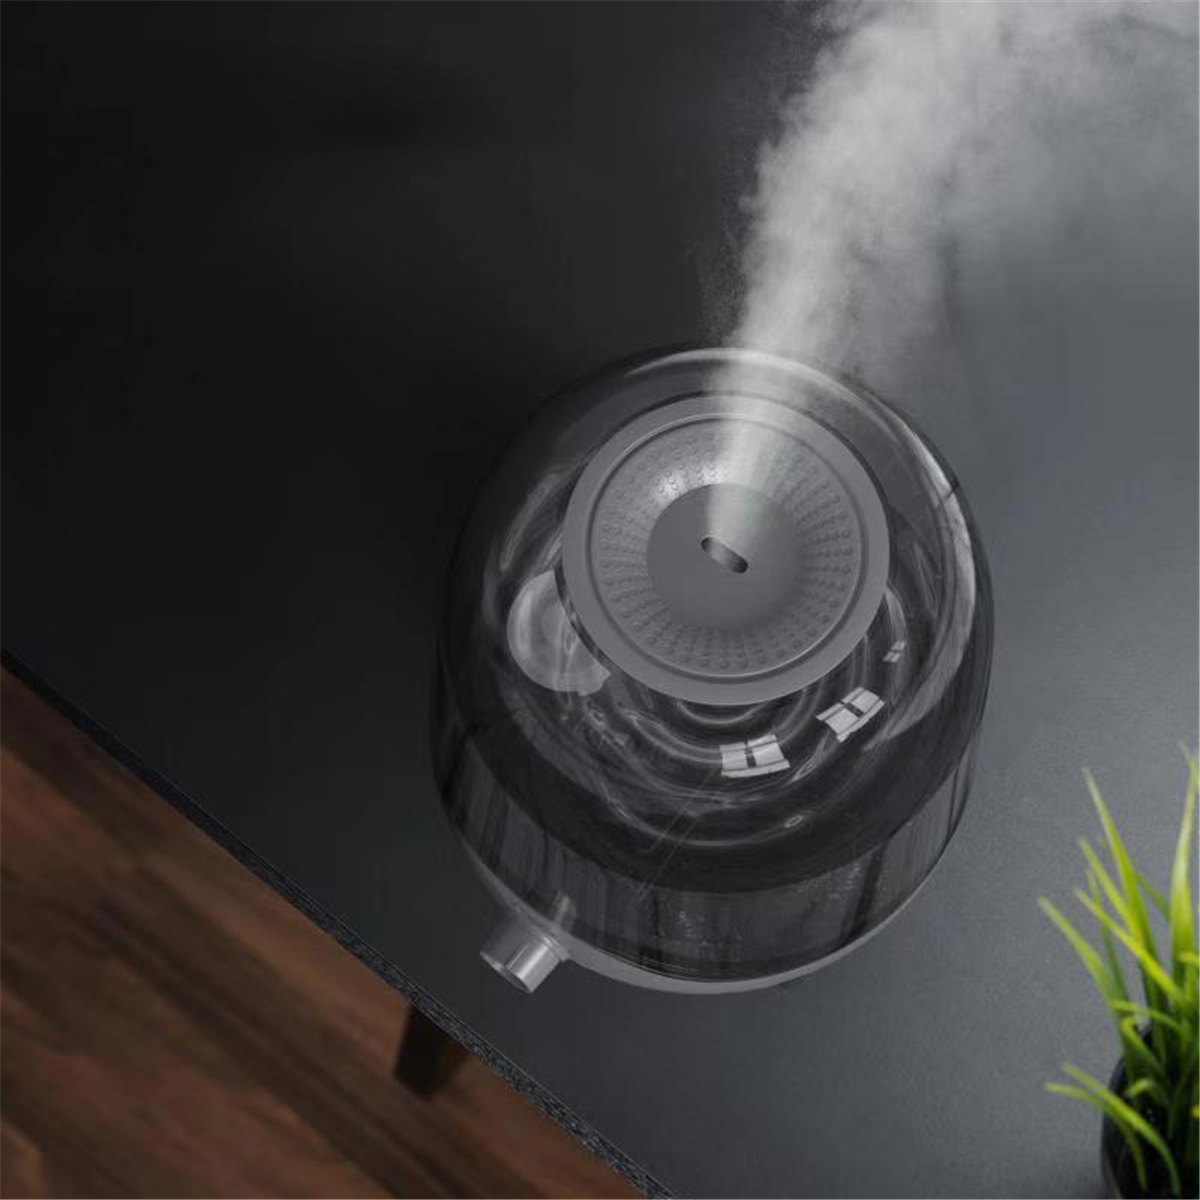 Deerma DEM-F323/DEM-F325 5L Large Capacity Crystal Air Humidifier 220V 25W 280 ml/h Humidification Low Noise Operation